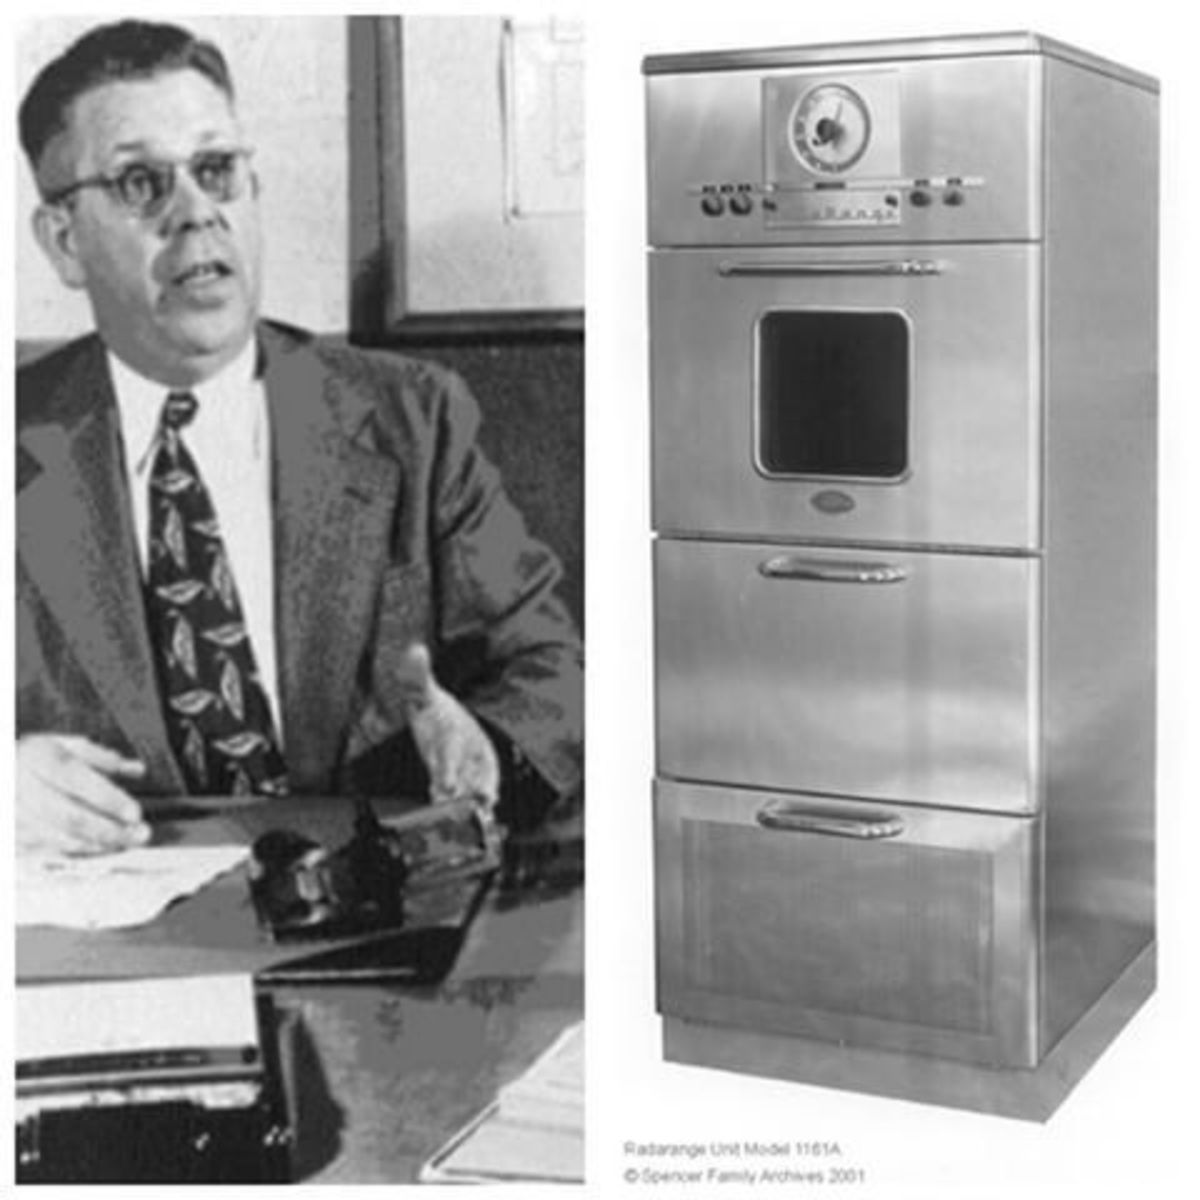 Percy Spencer and first commercial microwave oven